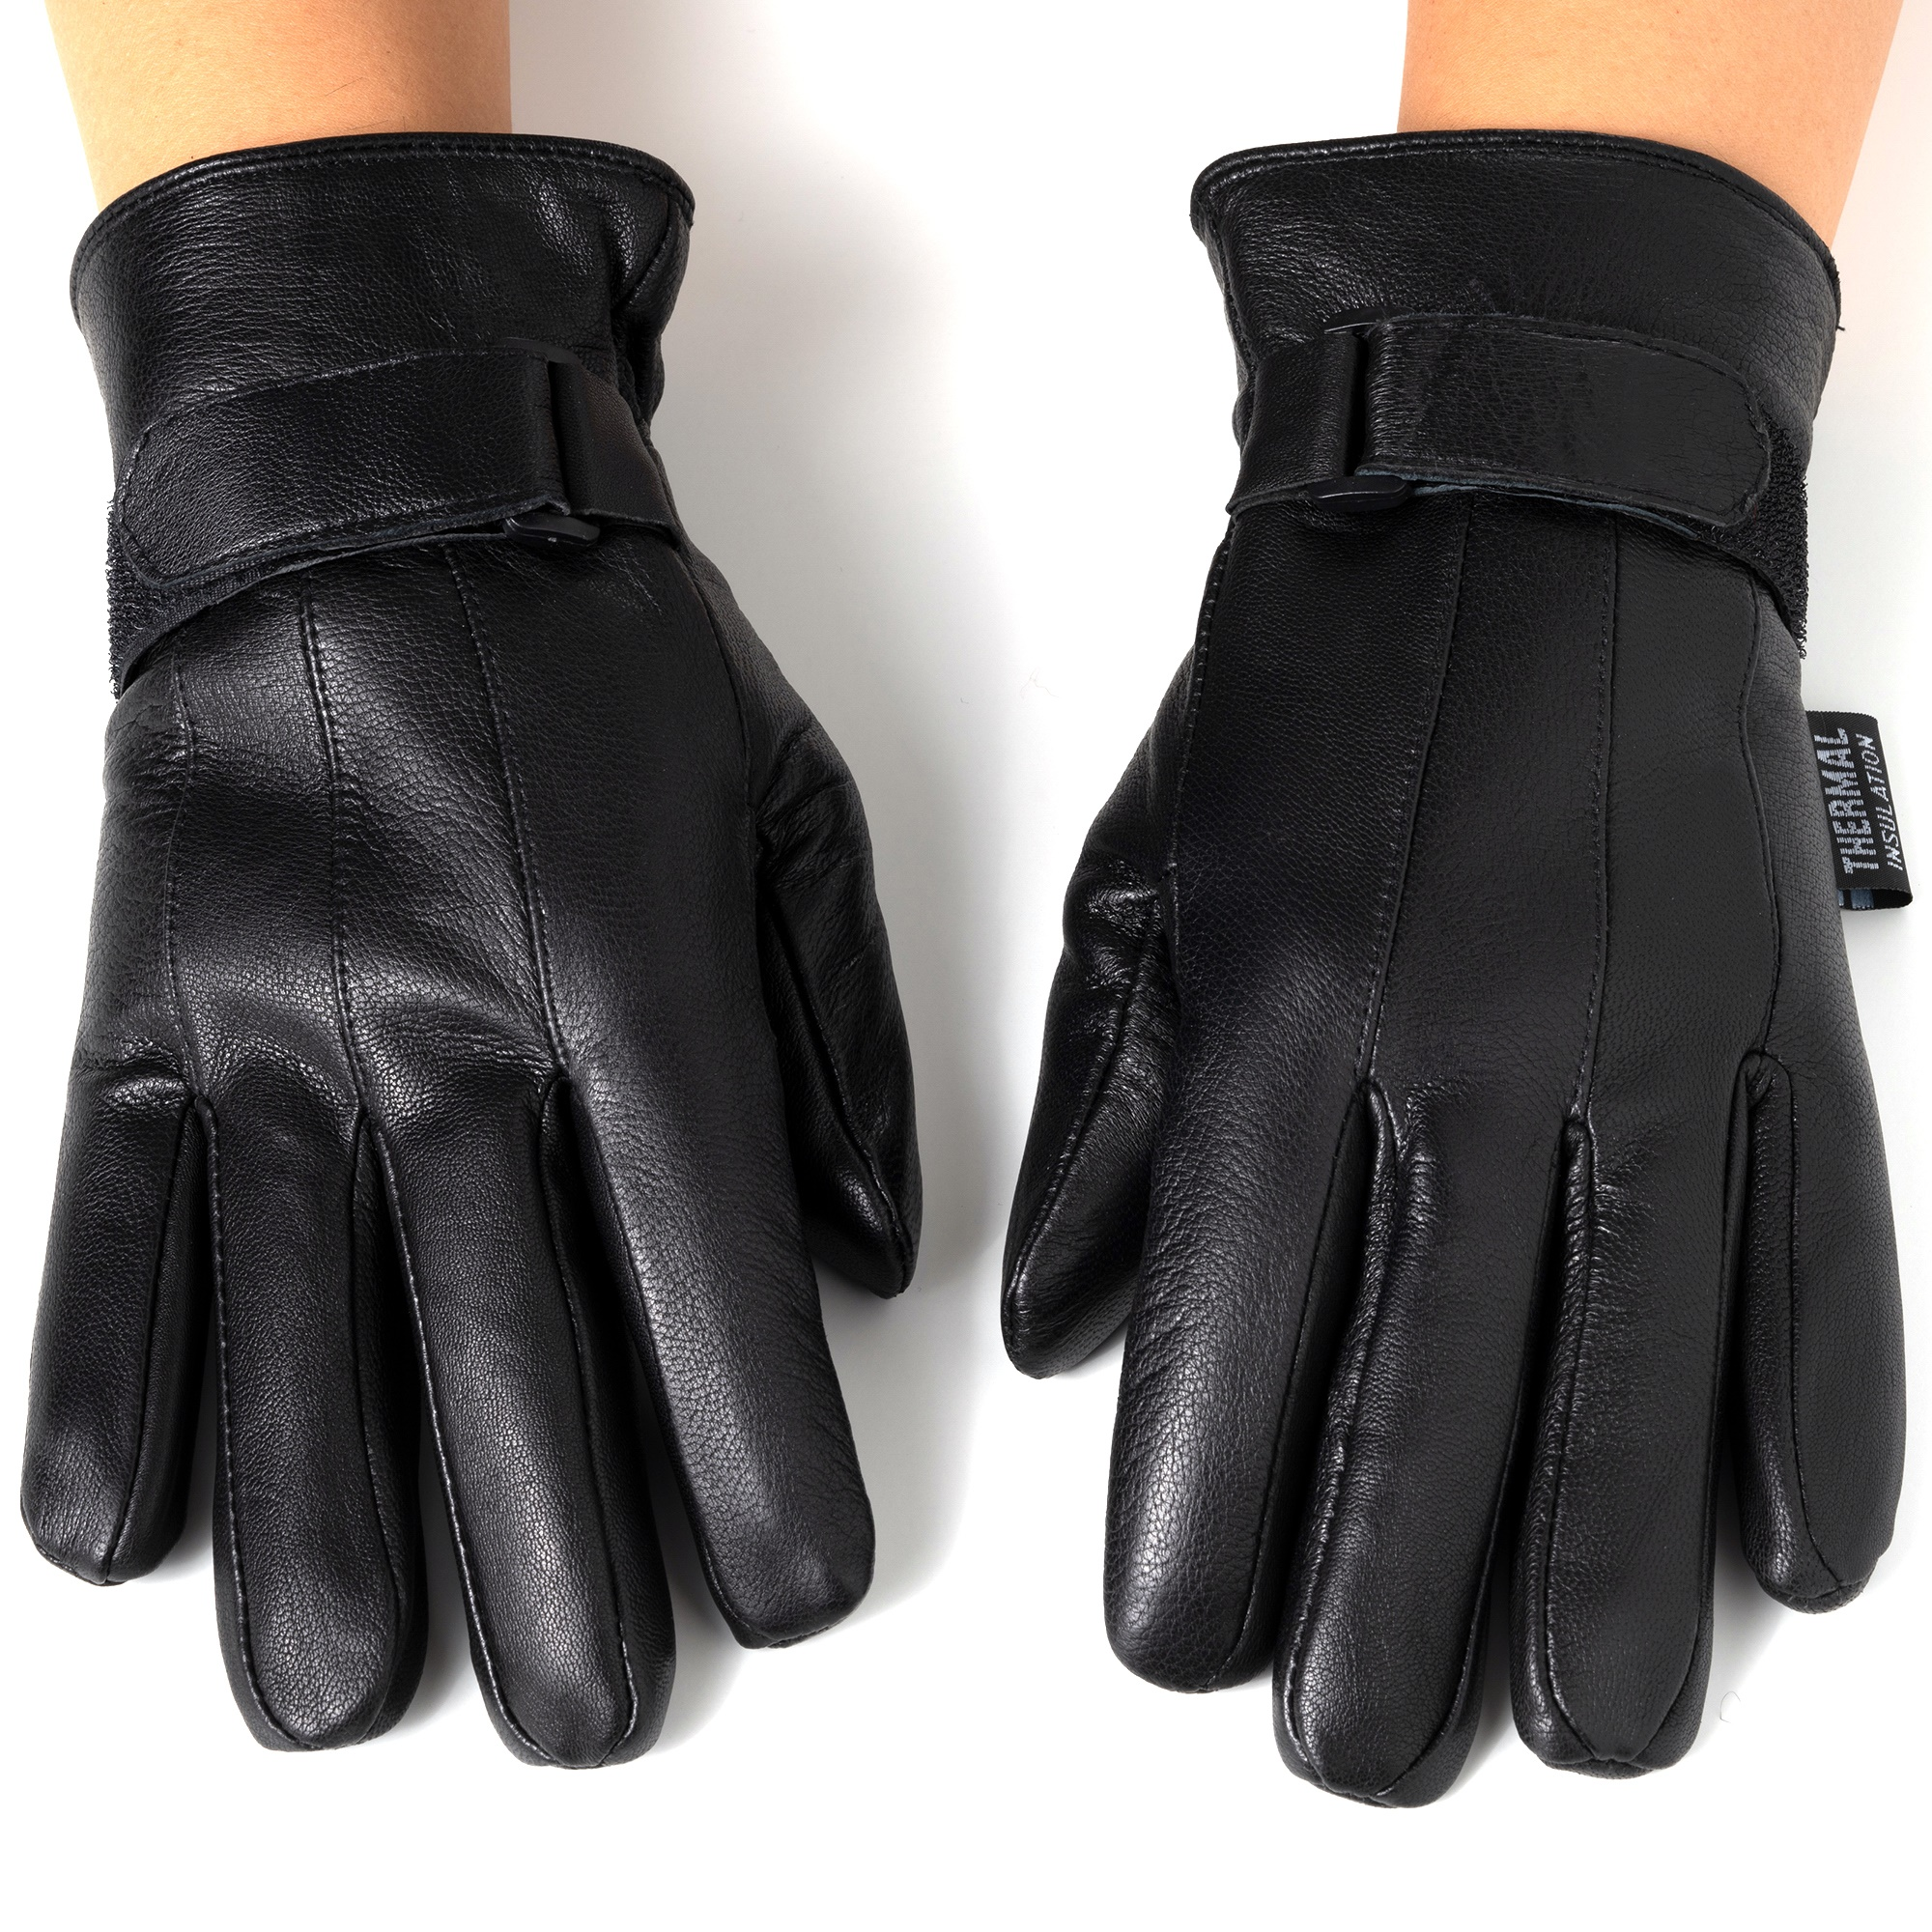 Alpine-Swiss-Mens-Gloves-Dressy-Genuine-Leather-Warm-Thermal-Lined-Wrist-Strap thumbnail 14